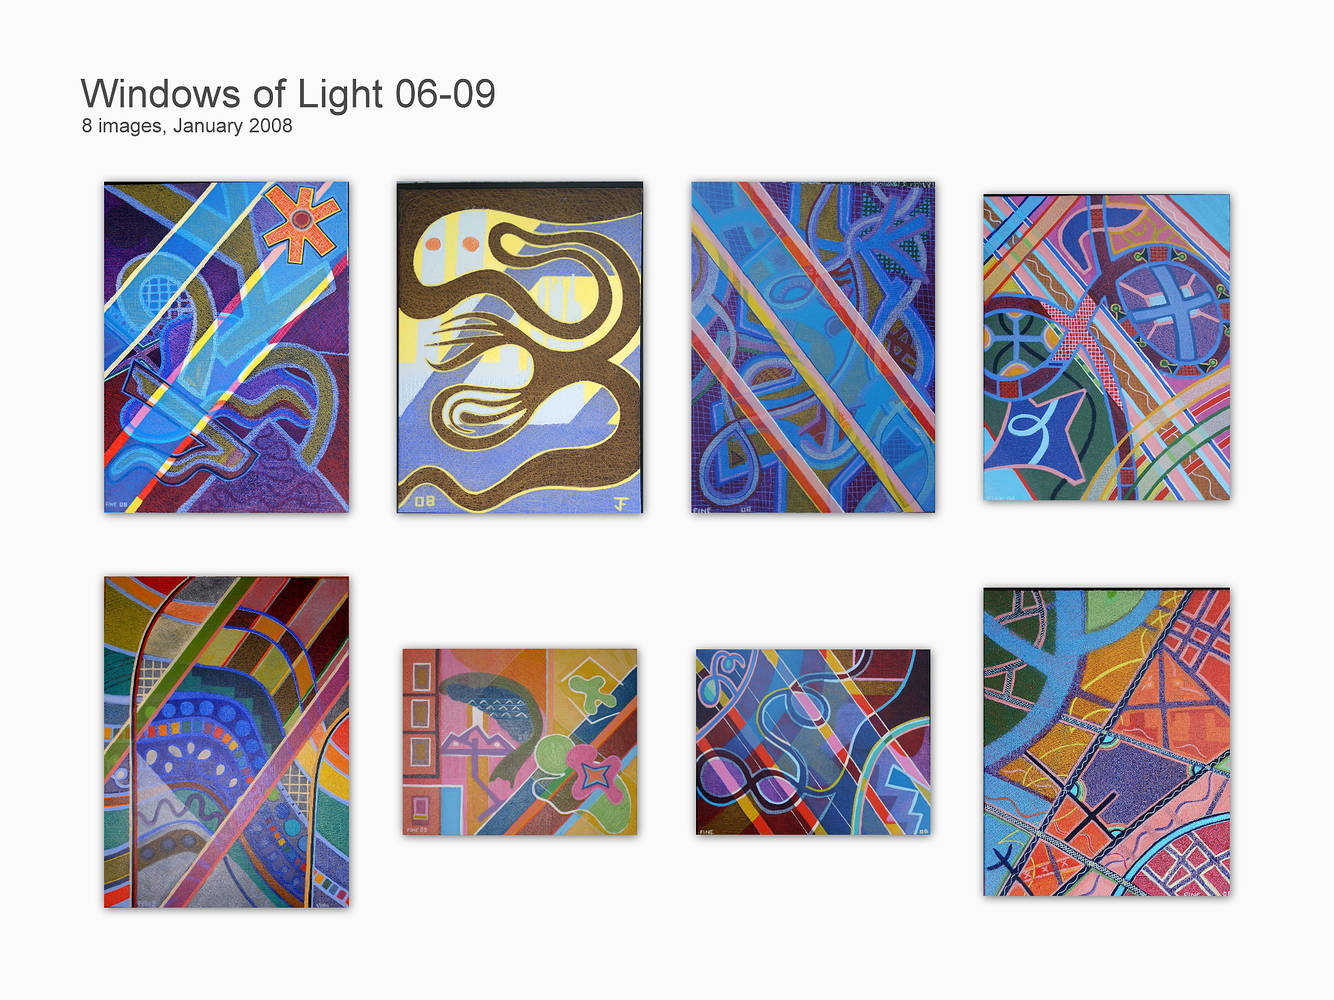 Windows of Light 06-09 by Jeffrey Fine